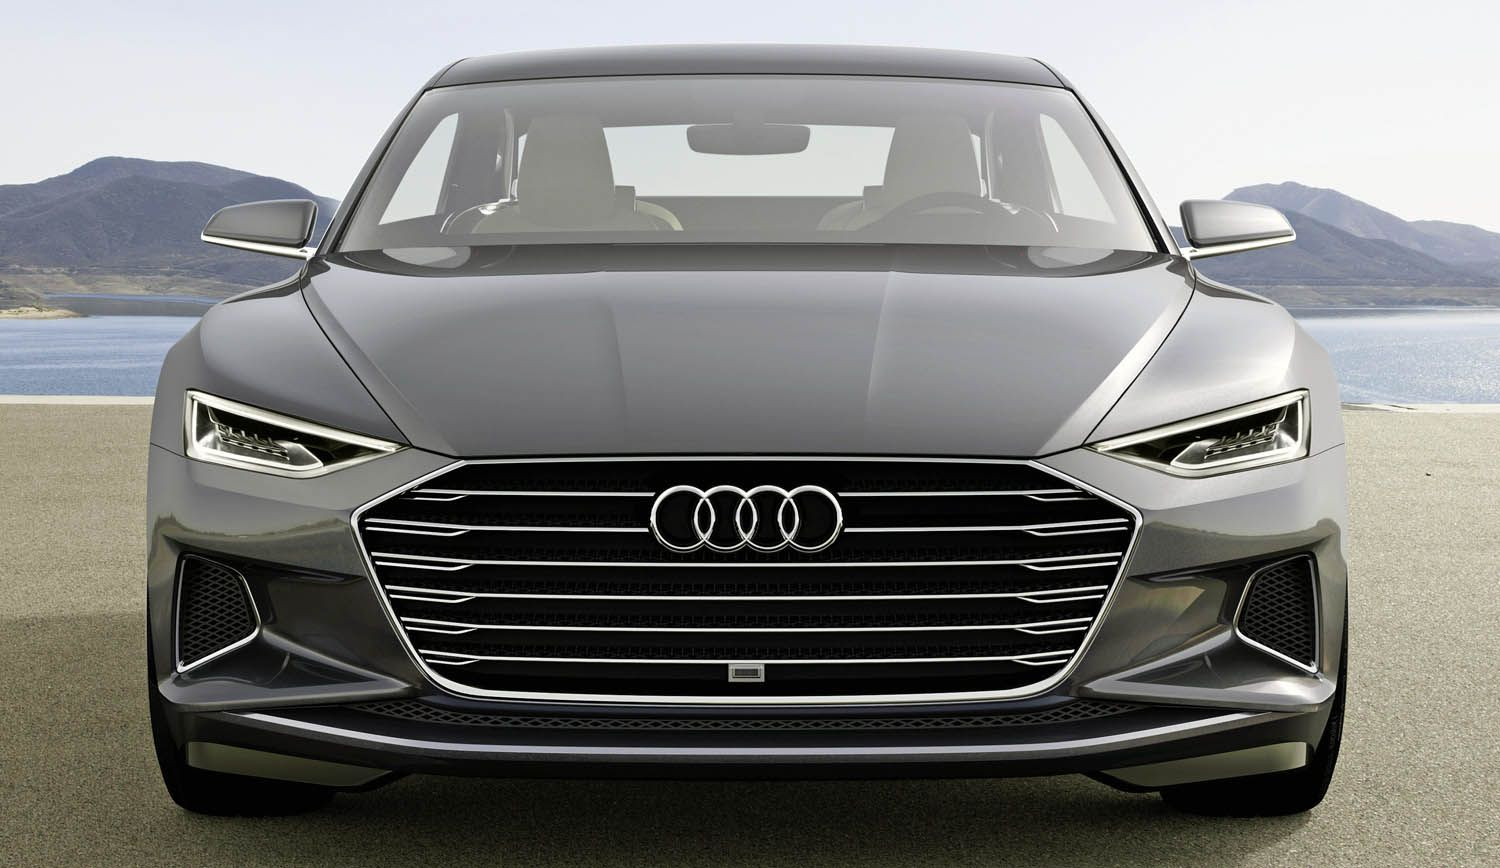 Best 20 audi rs7 price ideas on pinterest no signup required audi a7 rs audi a7 sport and audi rs5